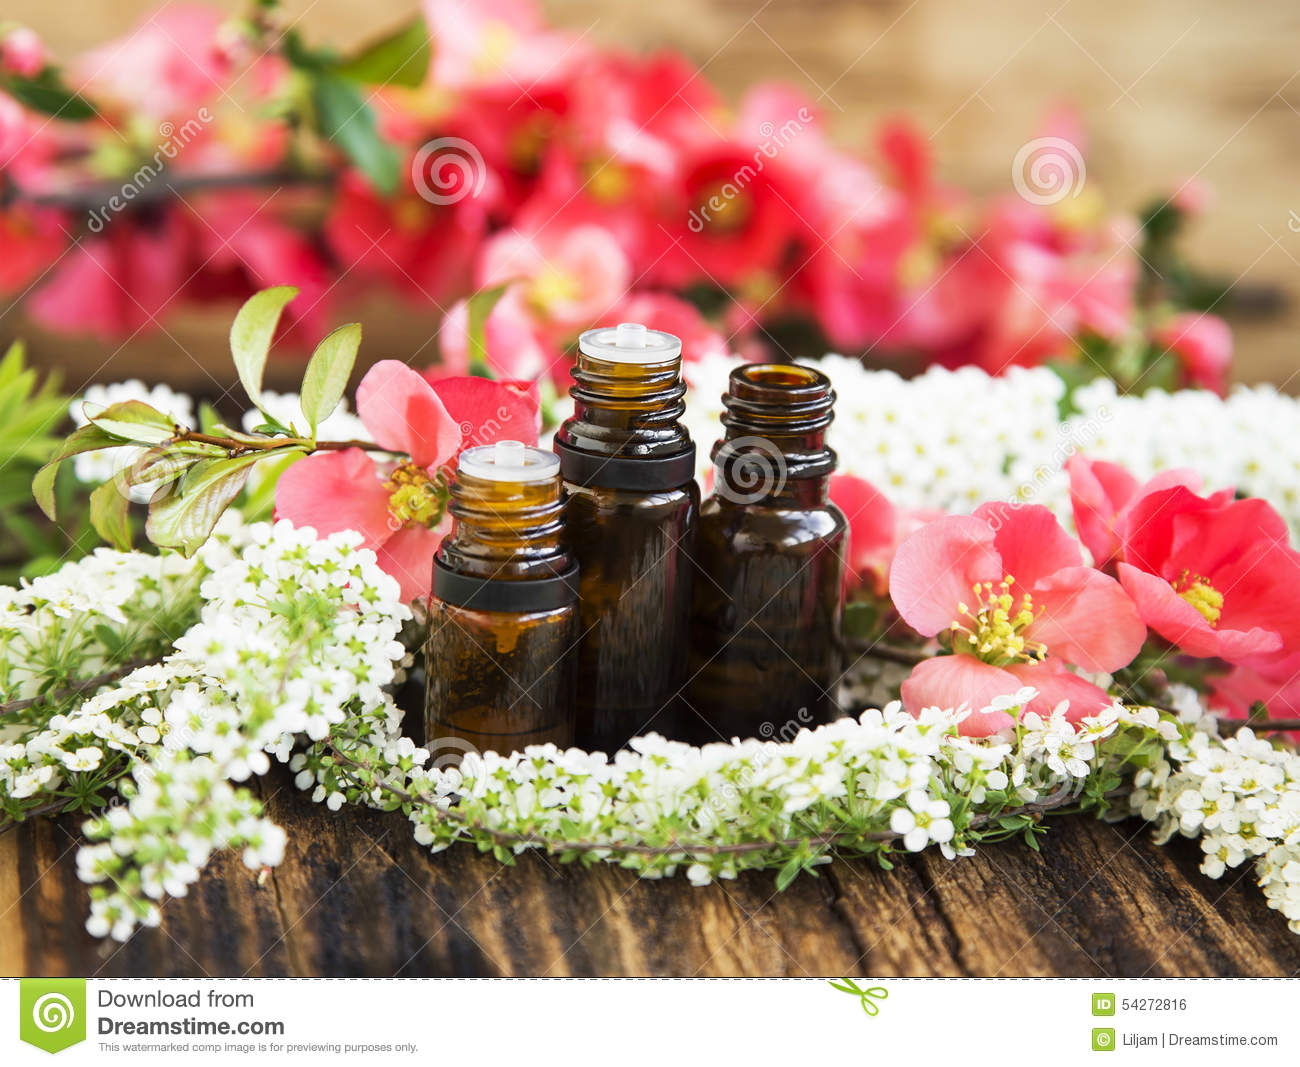 Aromatherapy Flower Essences In Bottles Stock Image